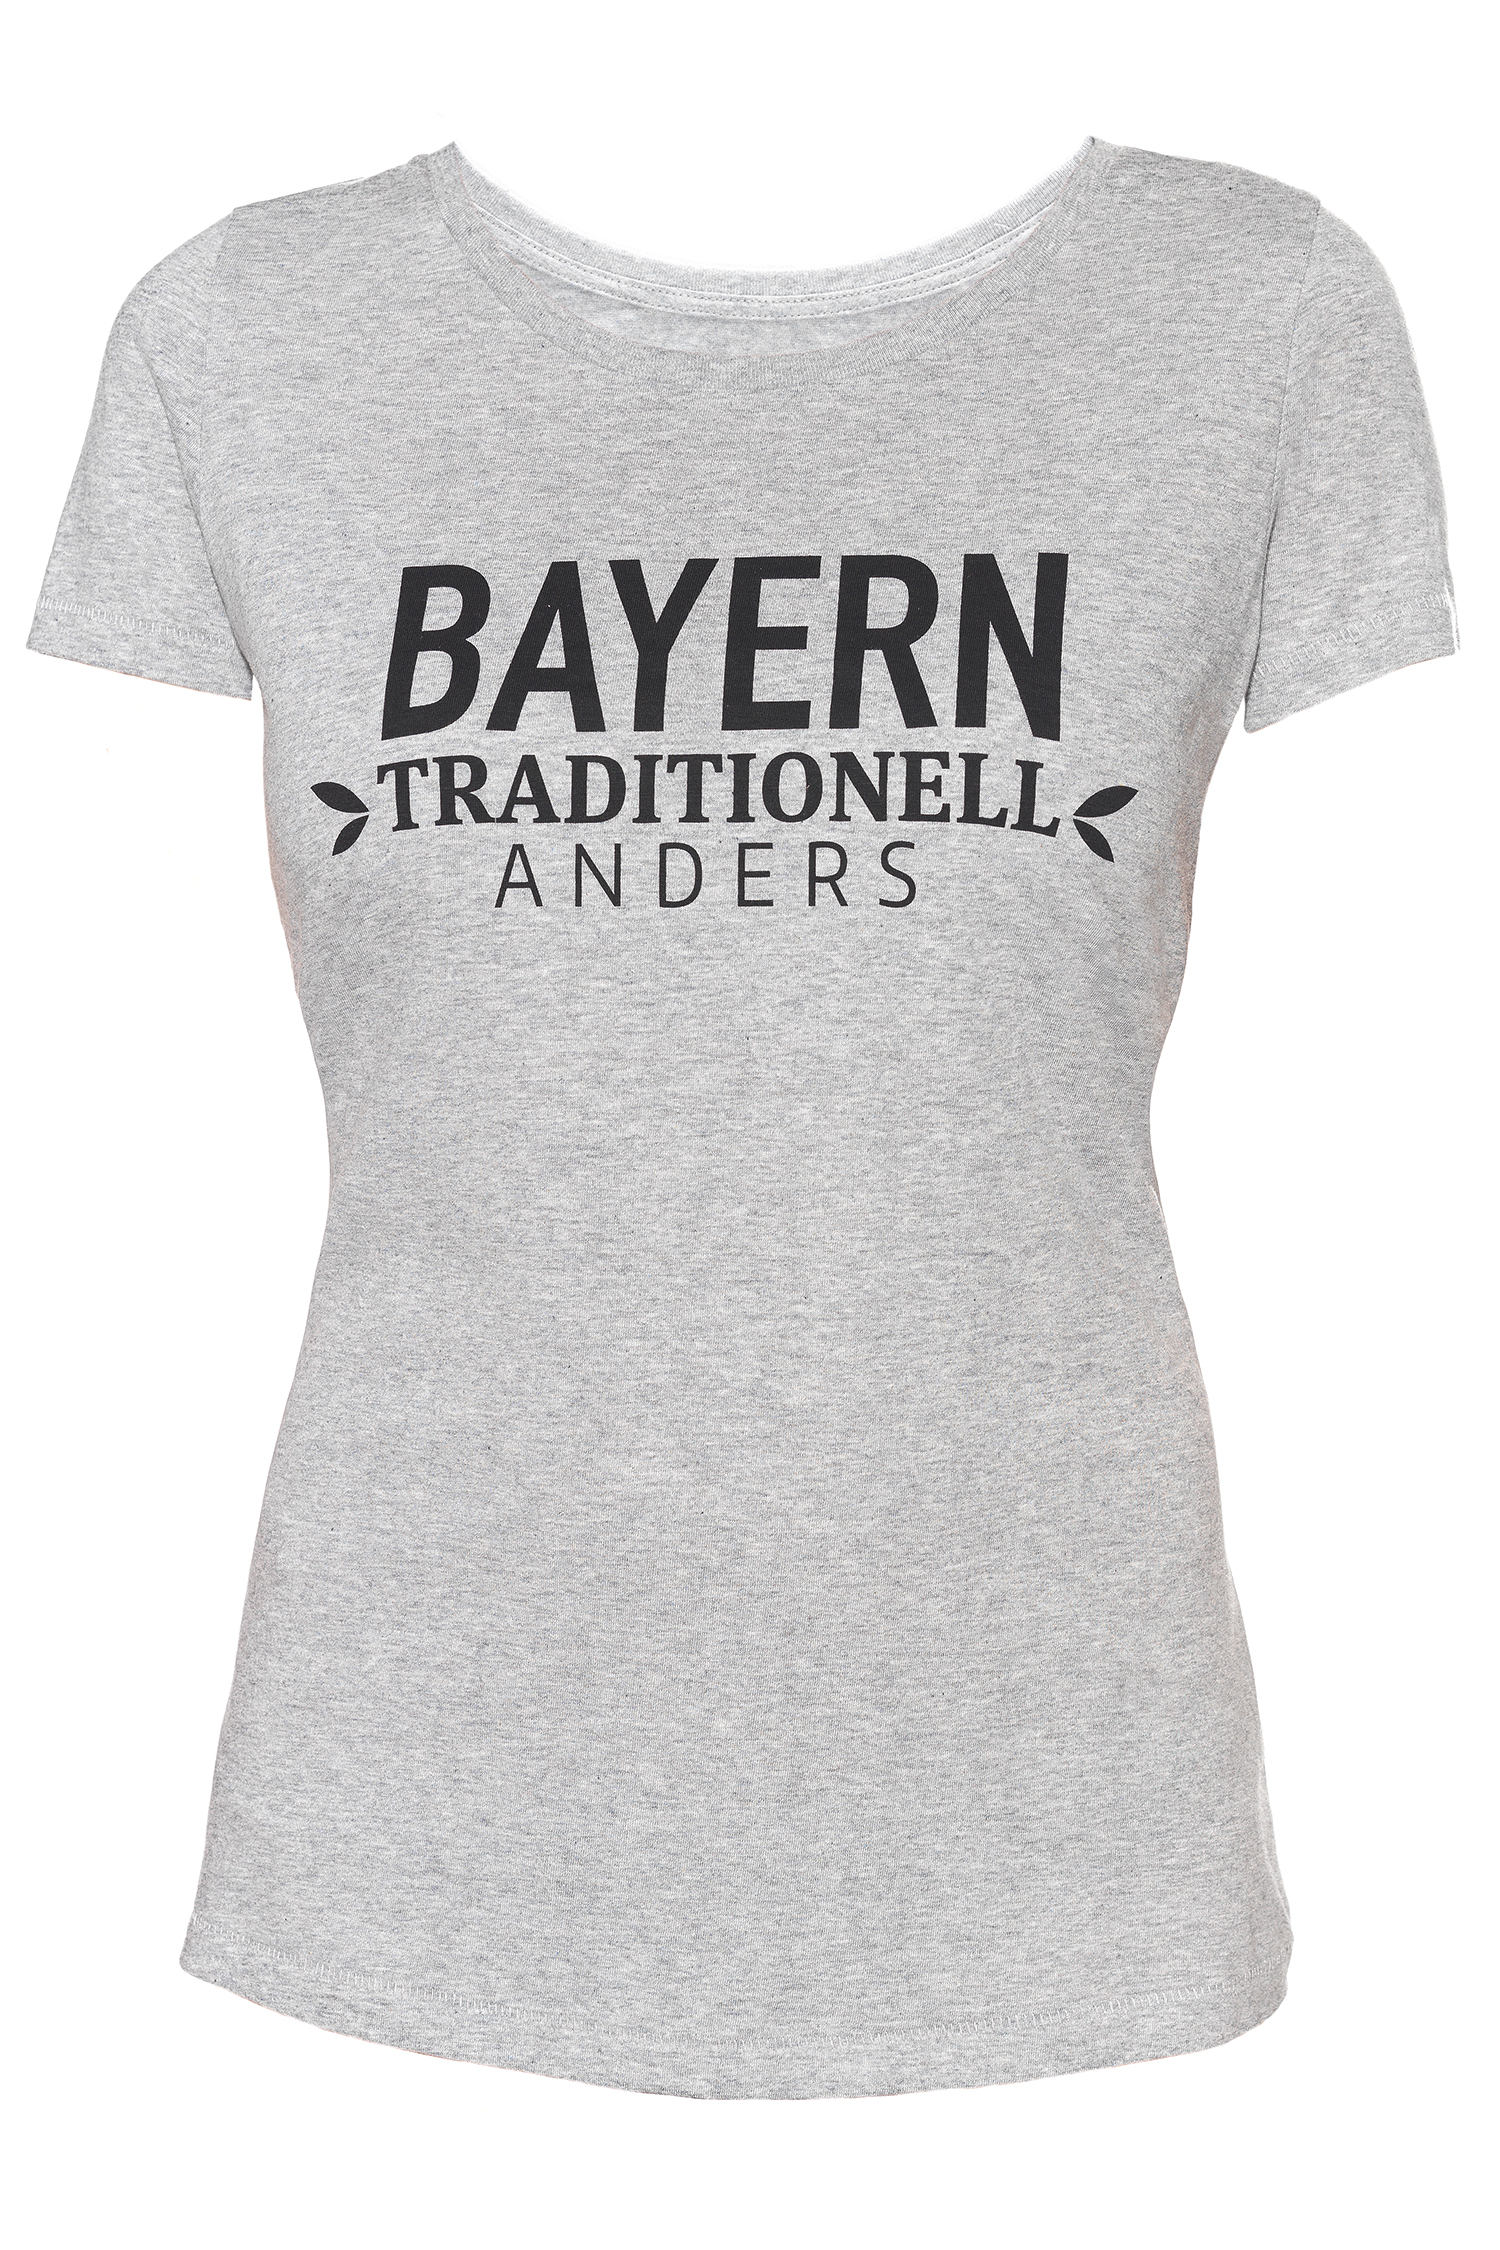 T-Shirt Bayern traditionell anders Damen